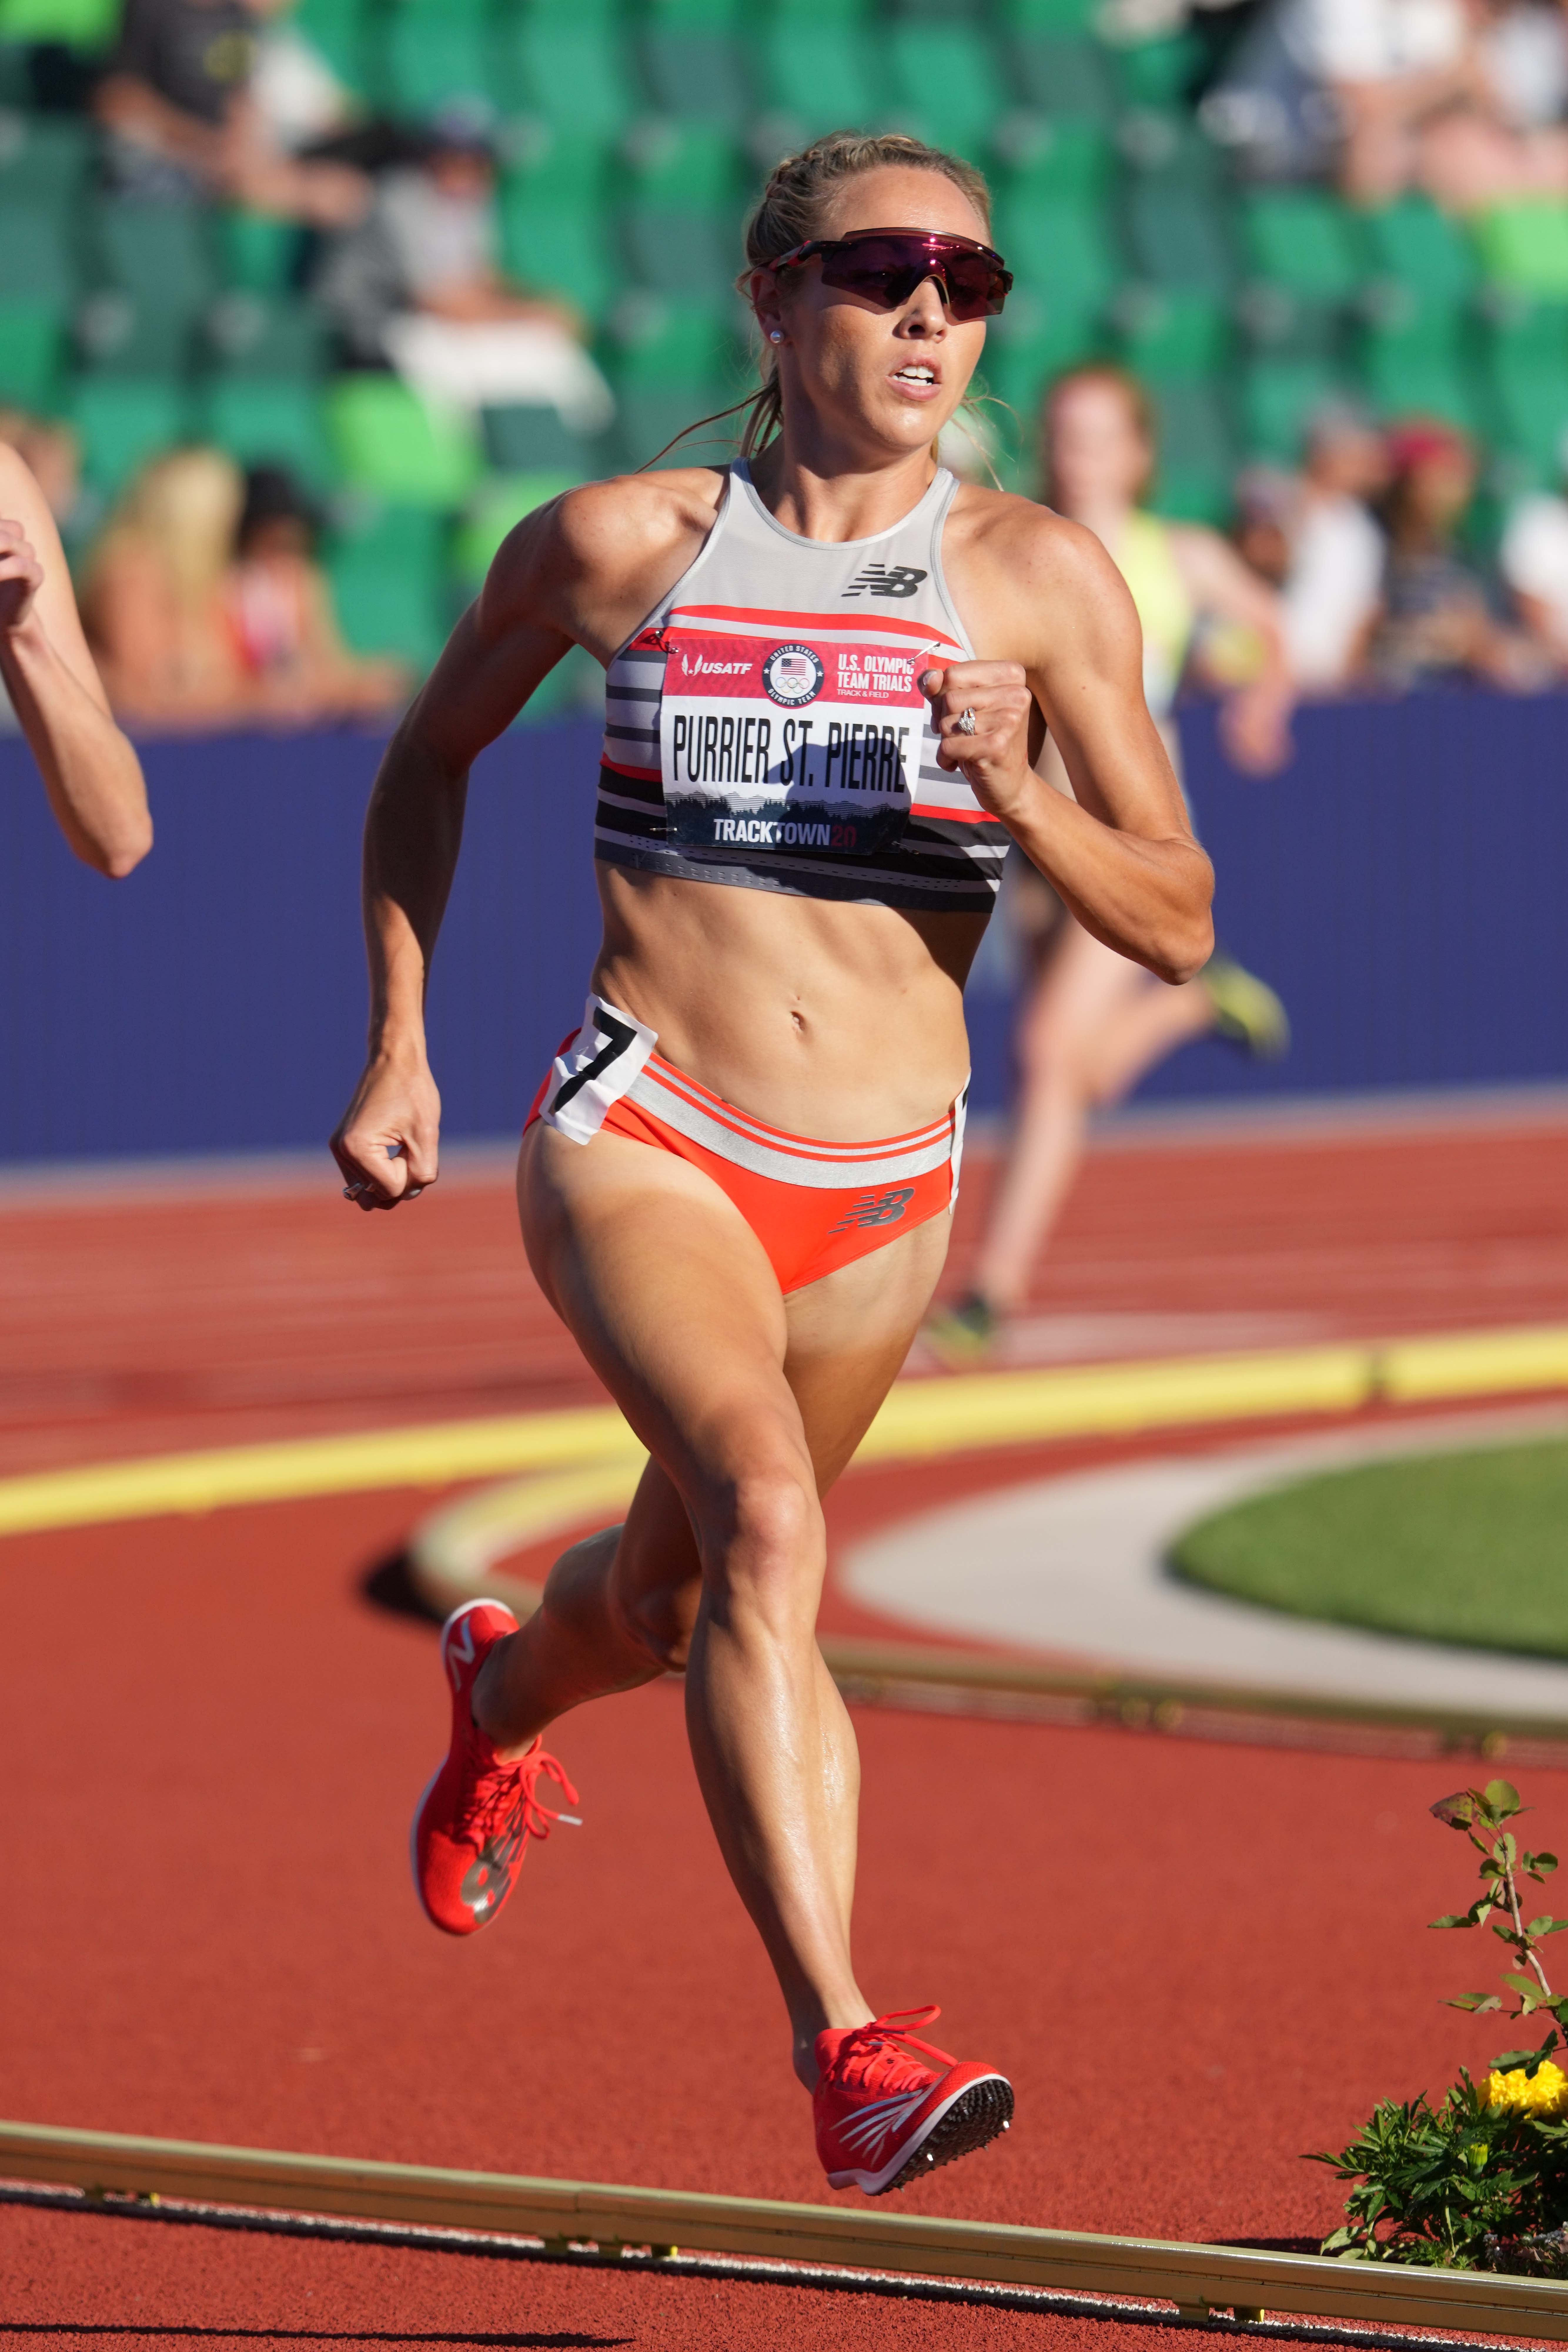 Elle Purrier St. Pierre wins women's 1,500m semifinal in 4:09.18  during the US Olympic Team Trials at Hayward Field.